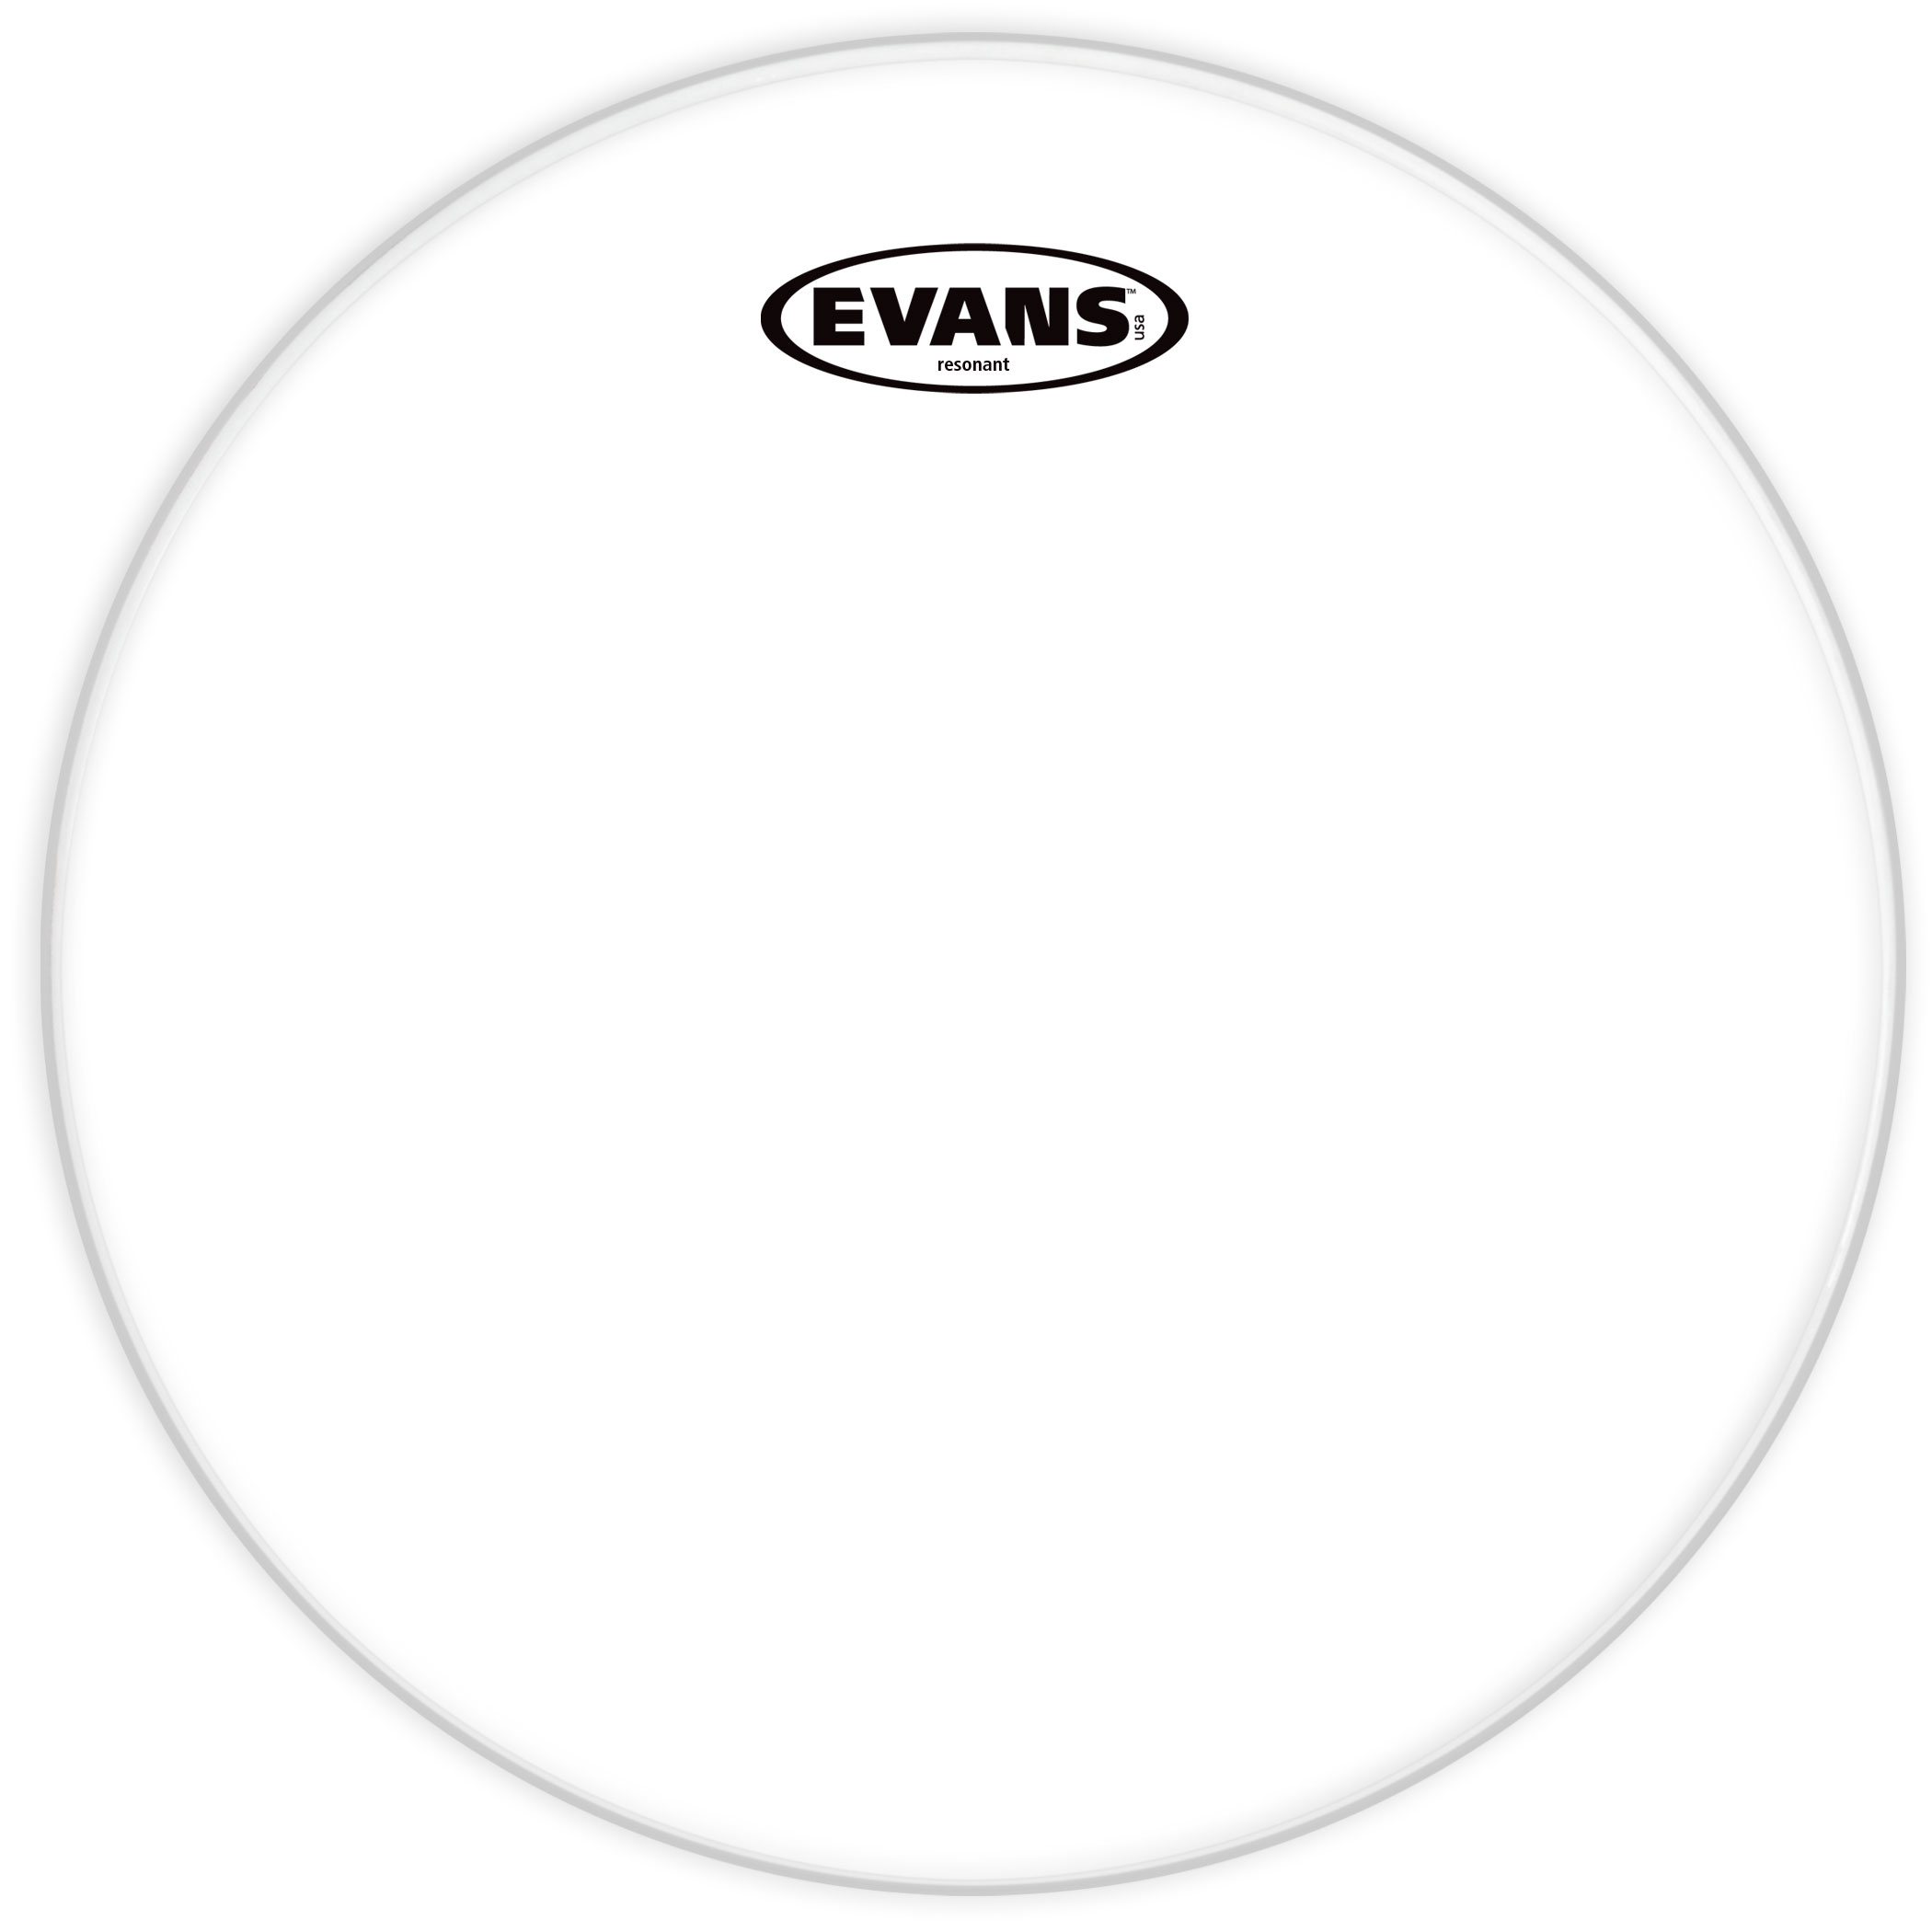 "Evans 6"" Resonant Glass Head"